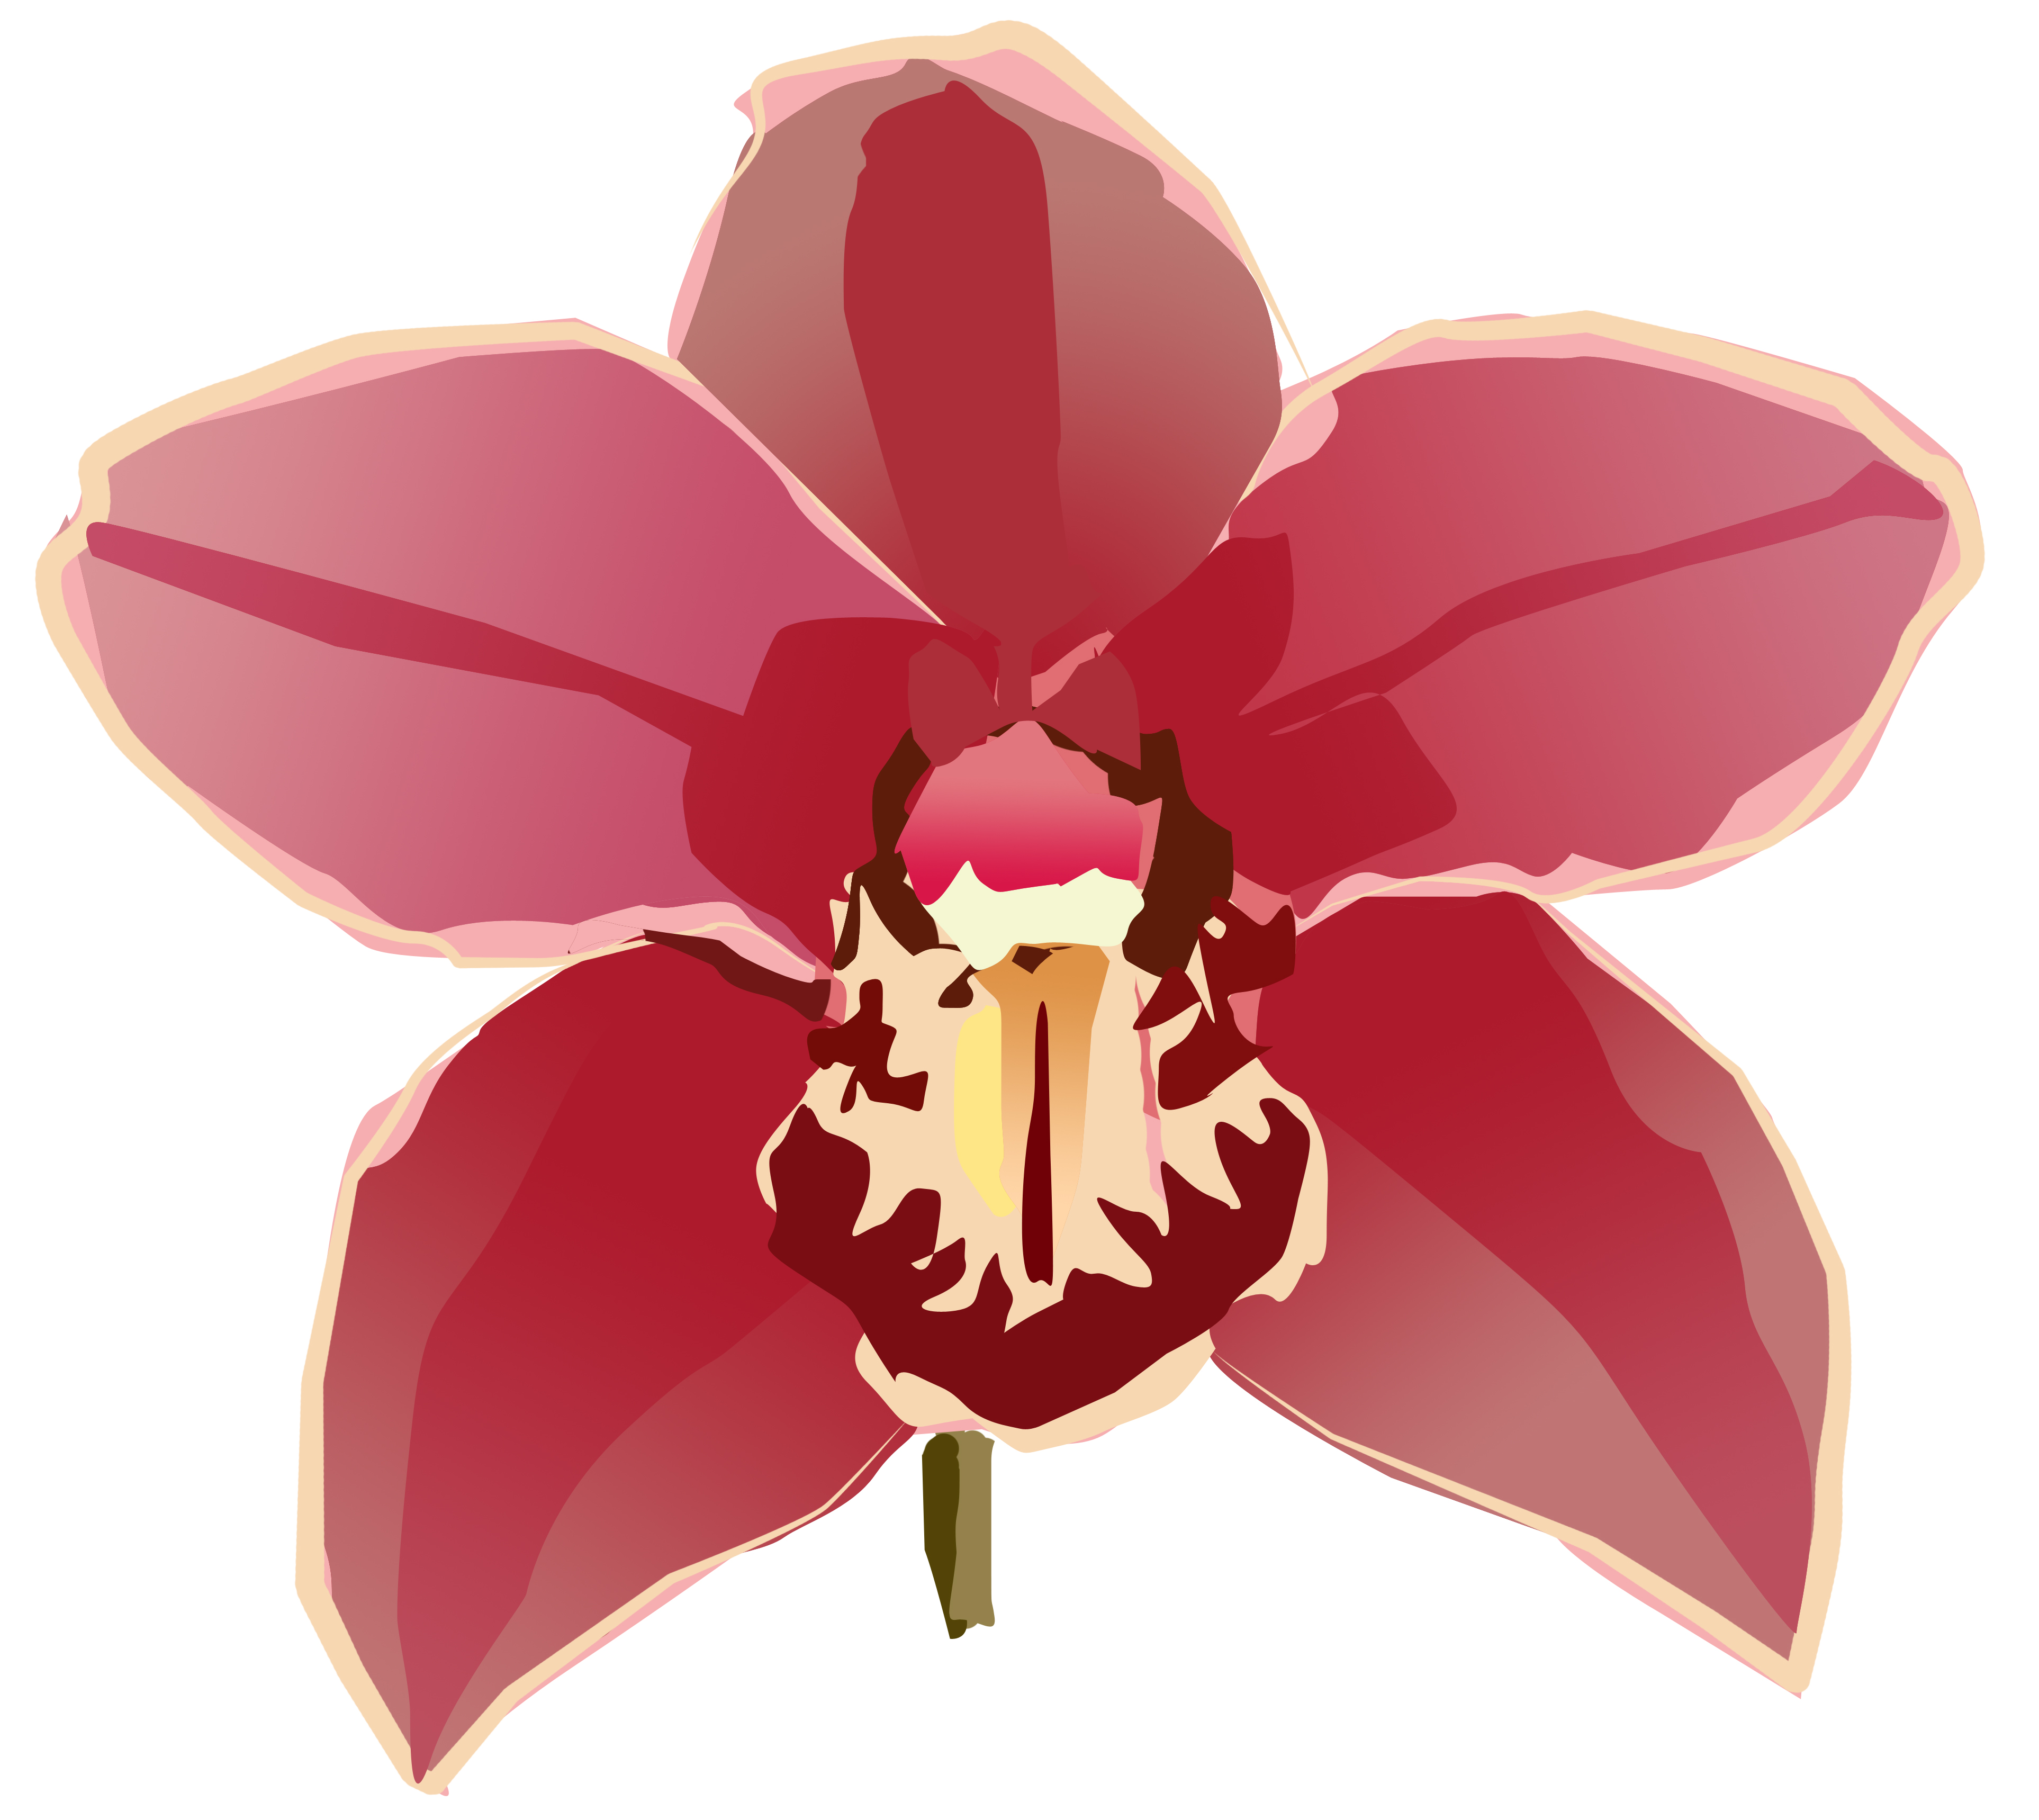 Orchid clip art free.